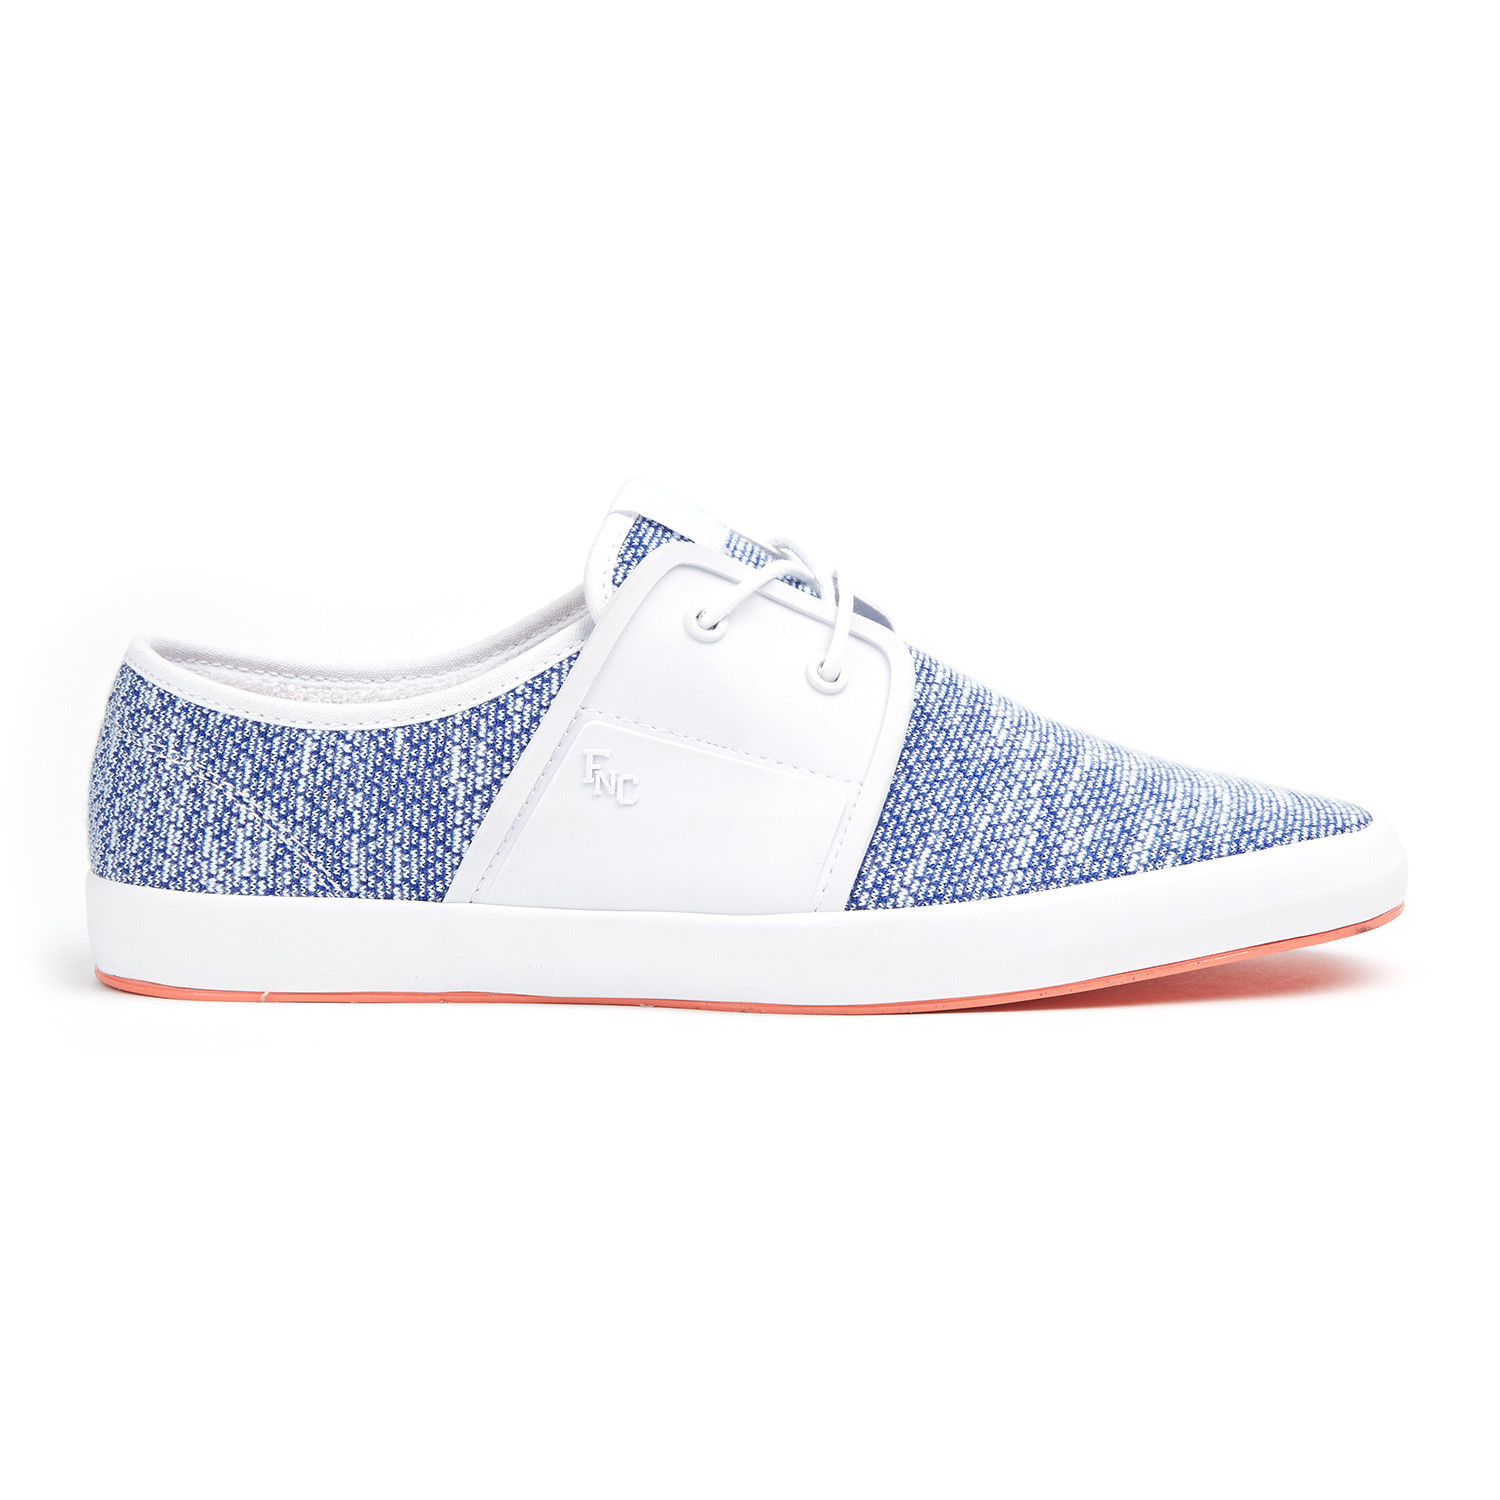 Fish n chips spam 2 sneaker blue white euro 40 for Fish and chips shoes